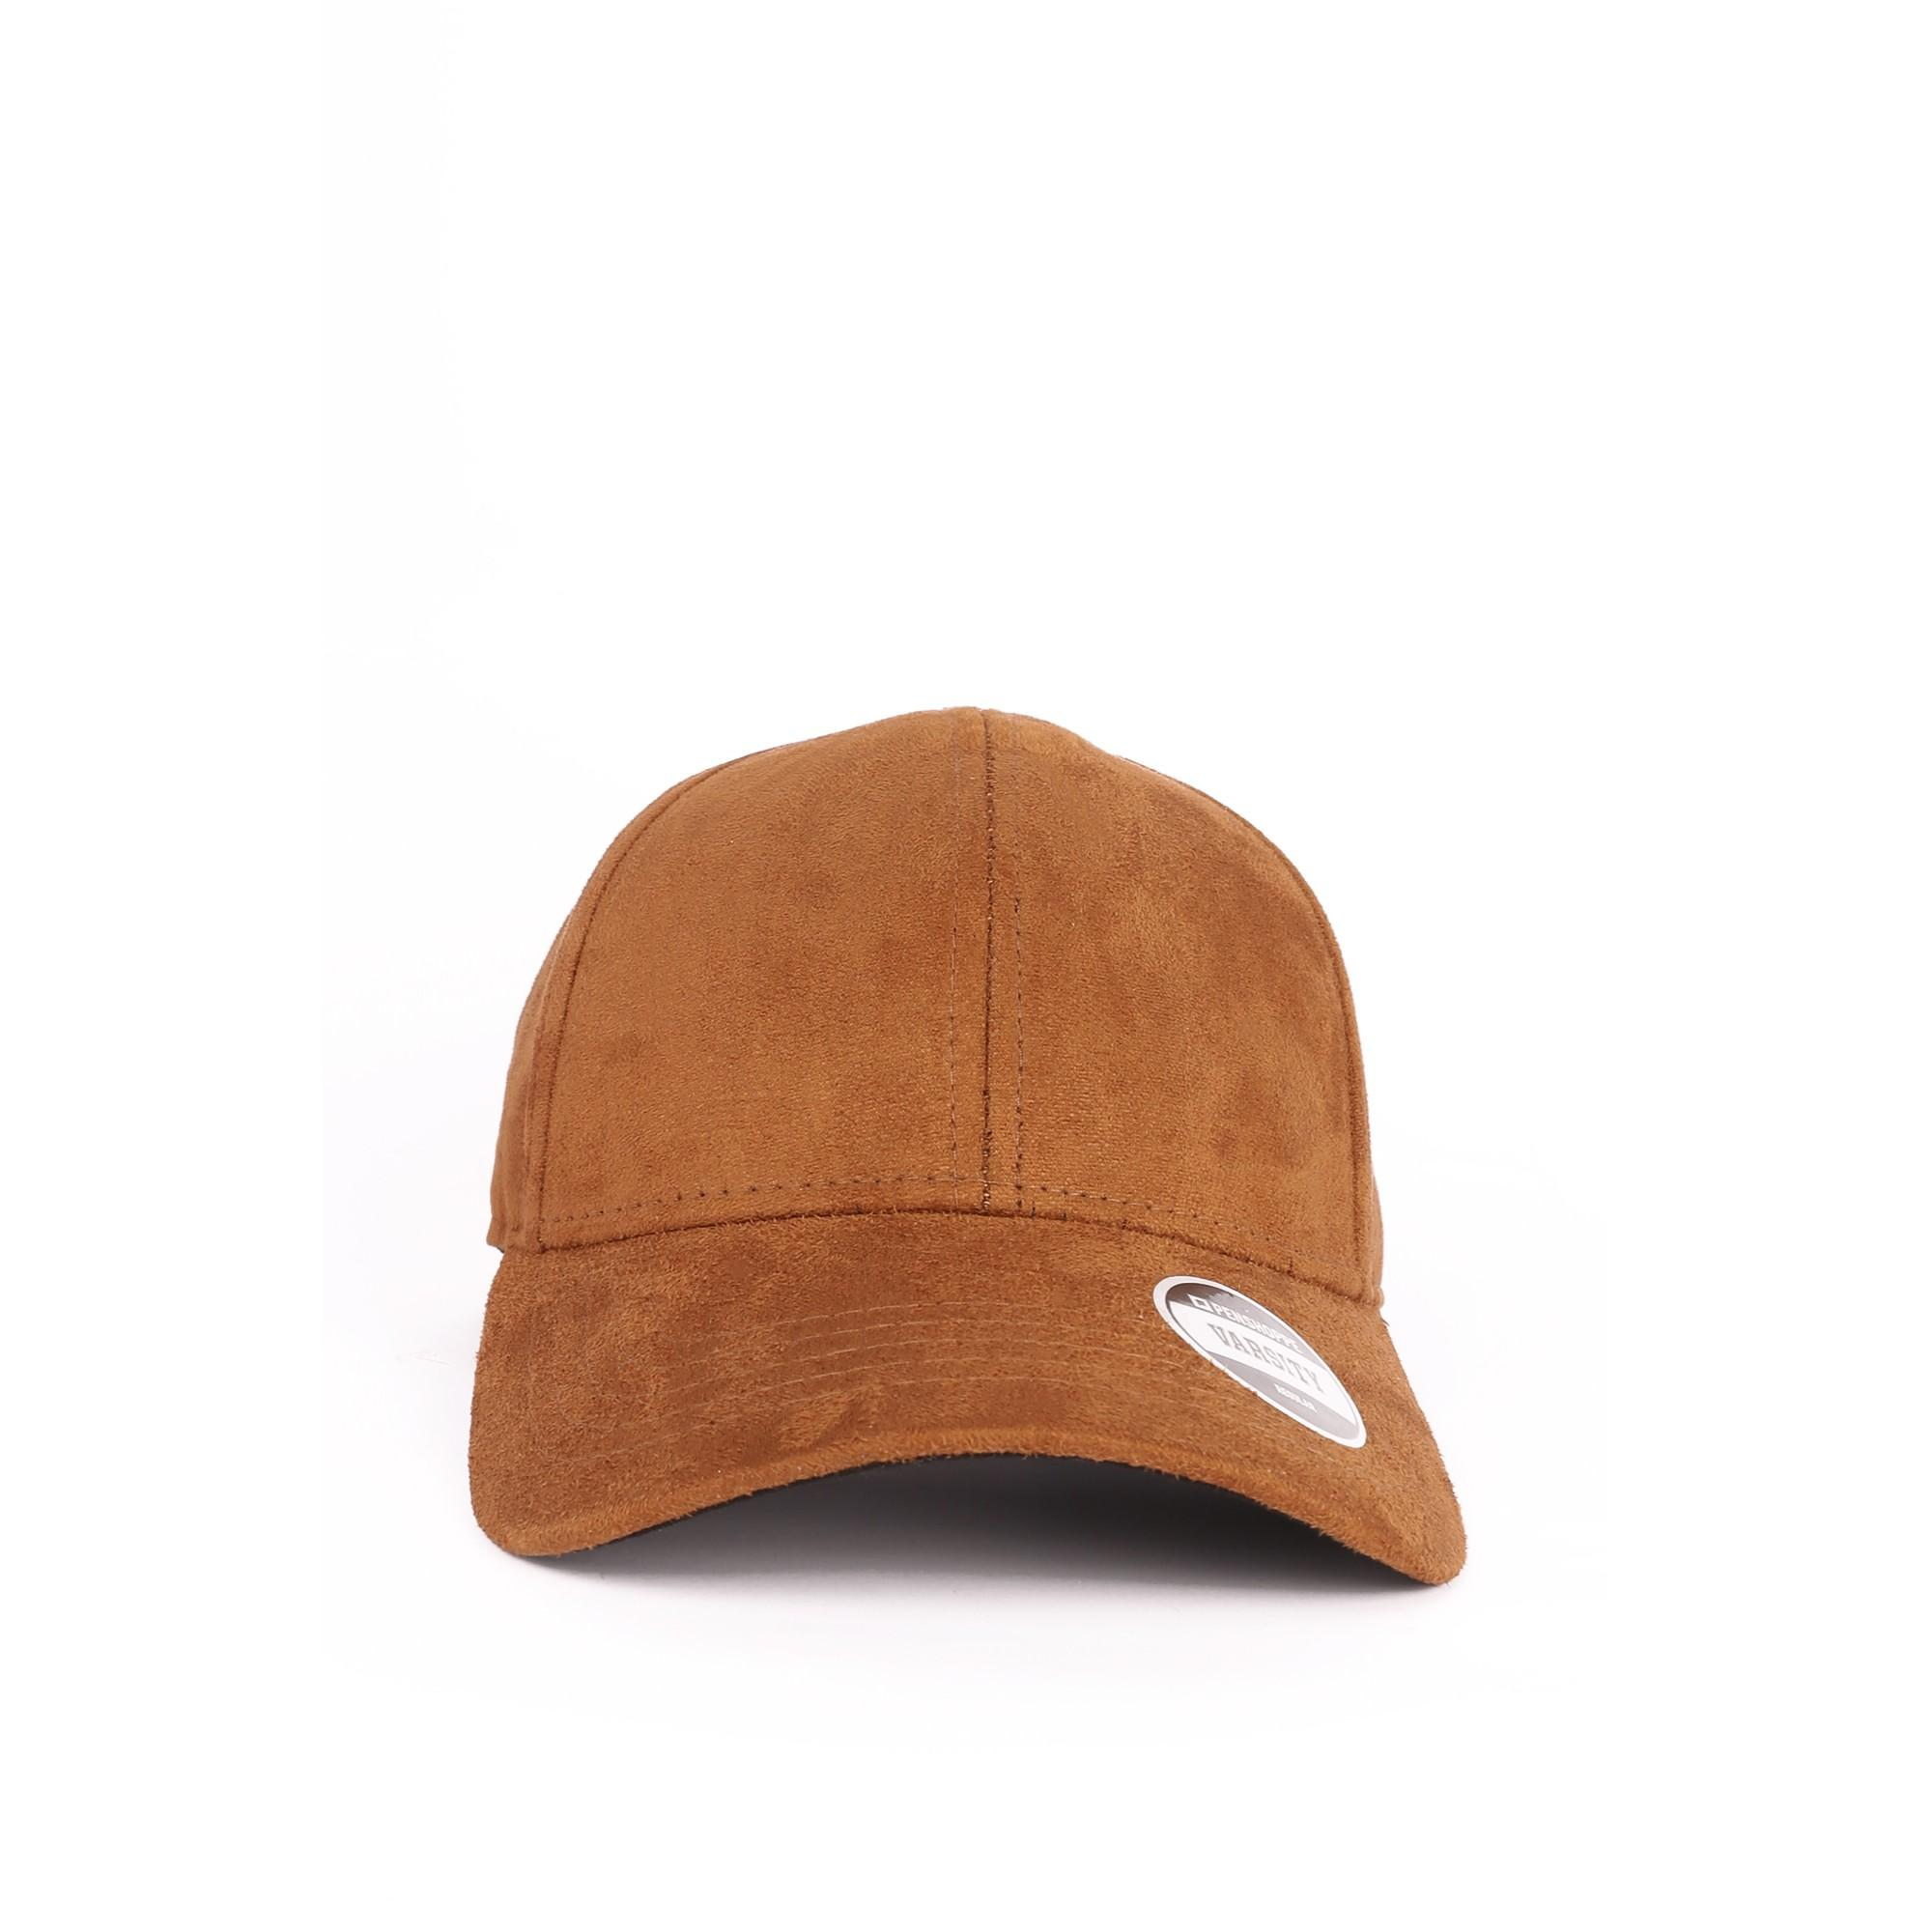 116c4d64f77 Penshoppe Suede Baseball Cap (Brown) Philippines